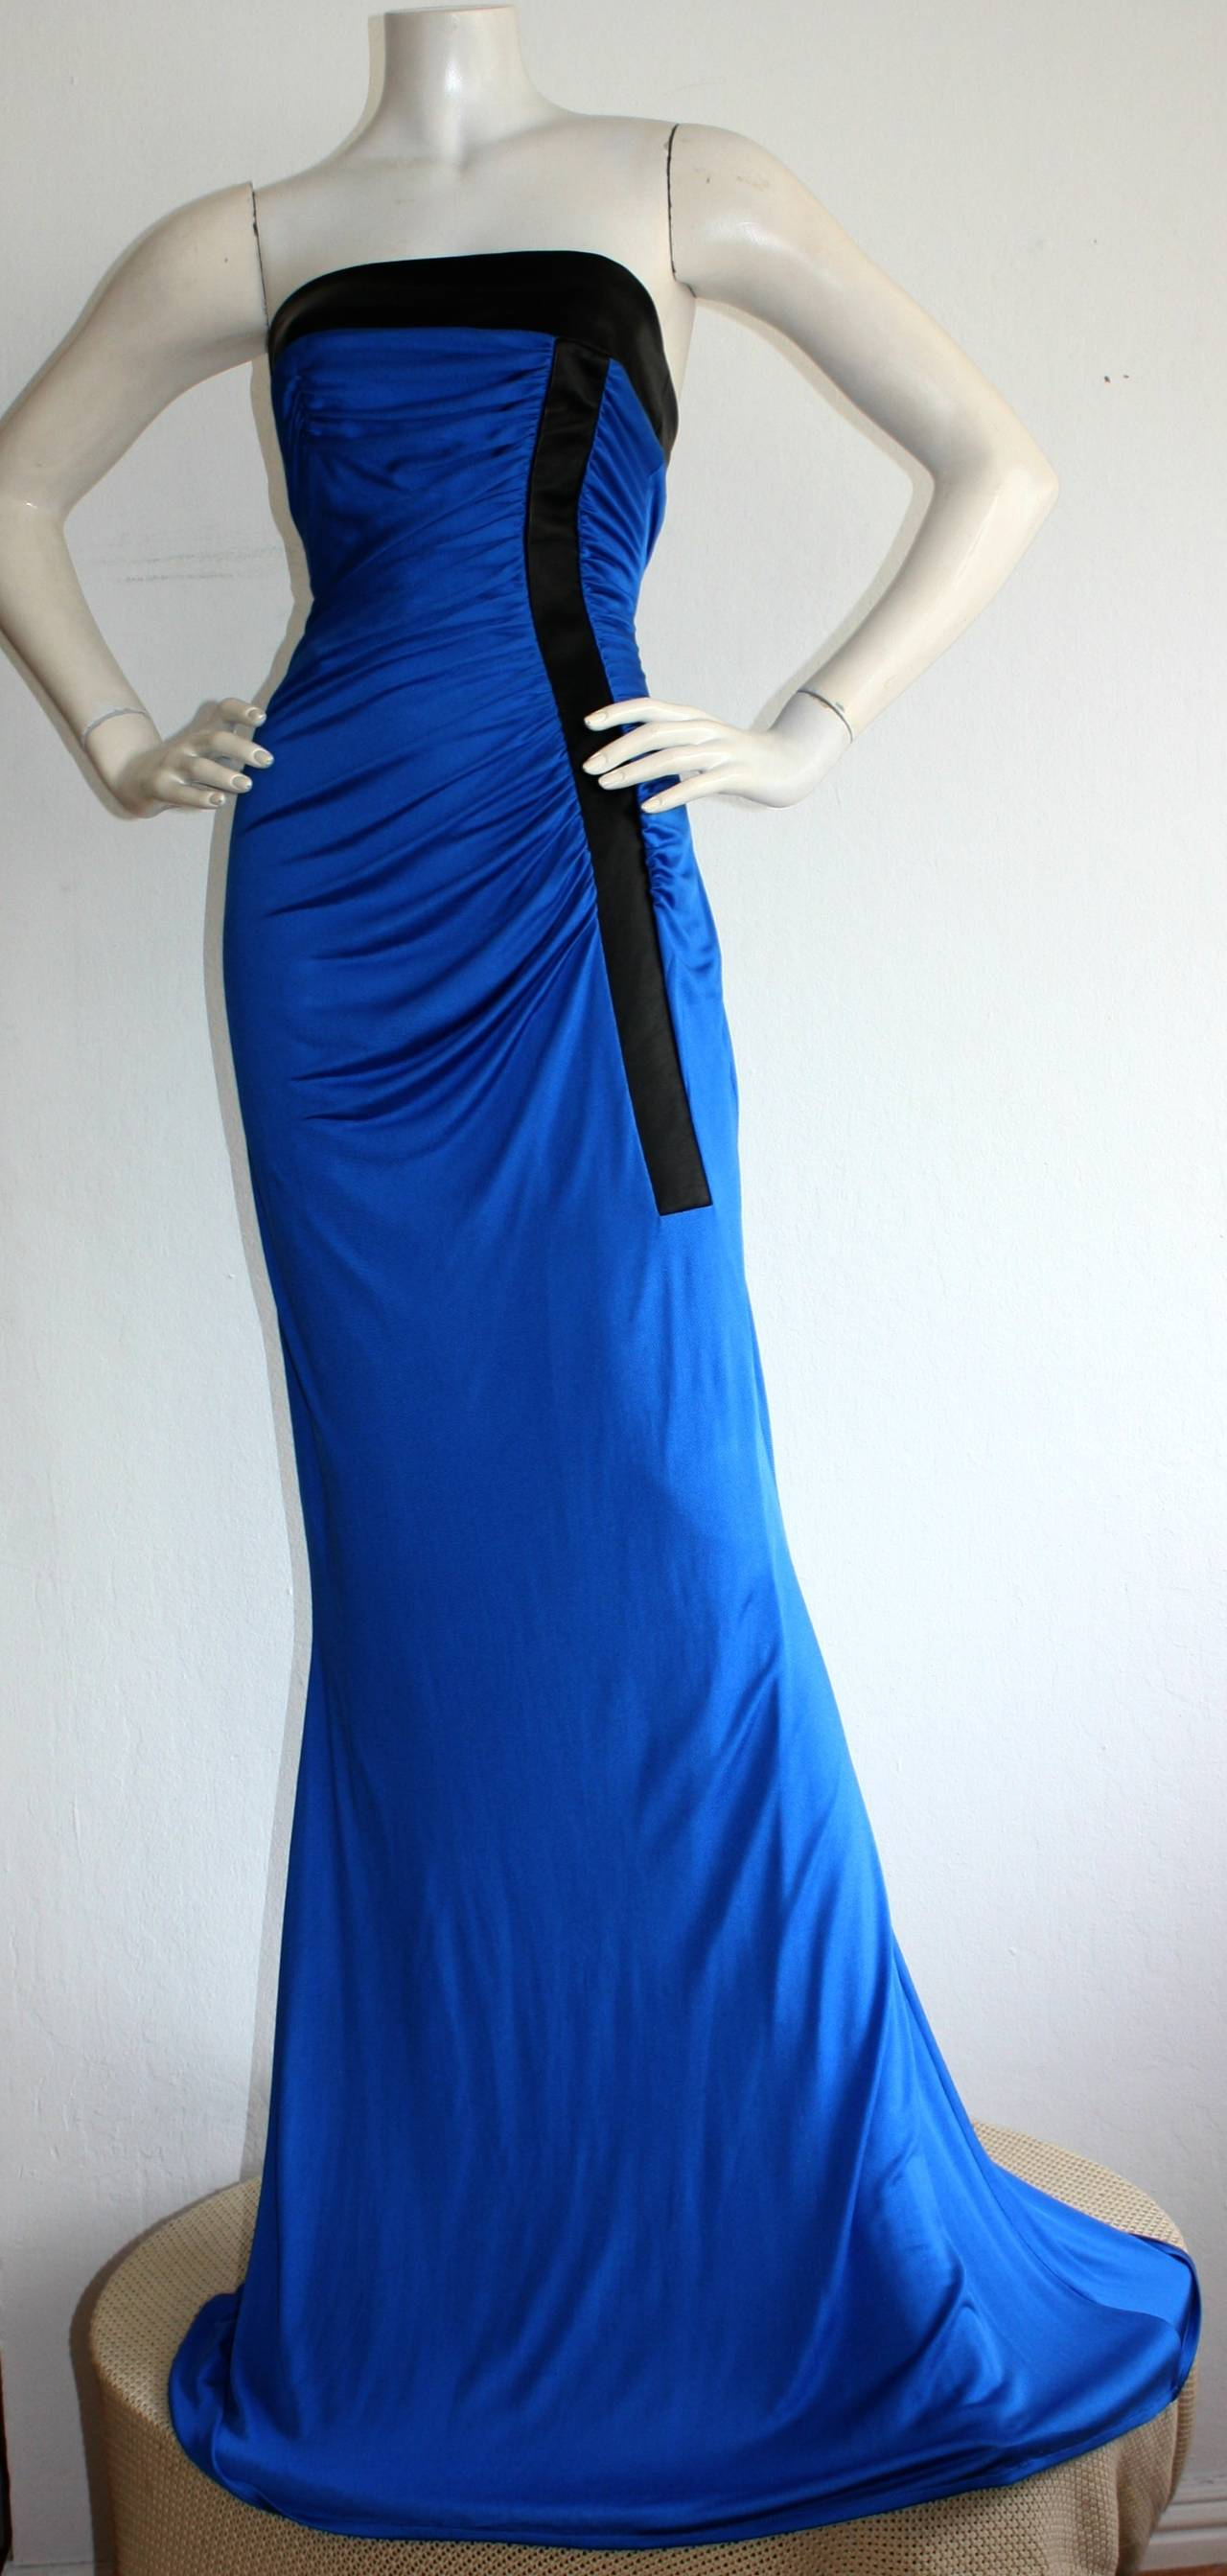 Ivana Trump's Lloyd Klein Couture Blue Silk Jersey & Black Leather Grecian Gown For Sale 1